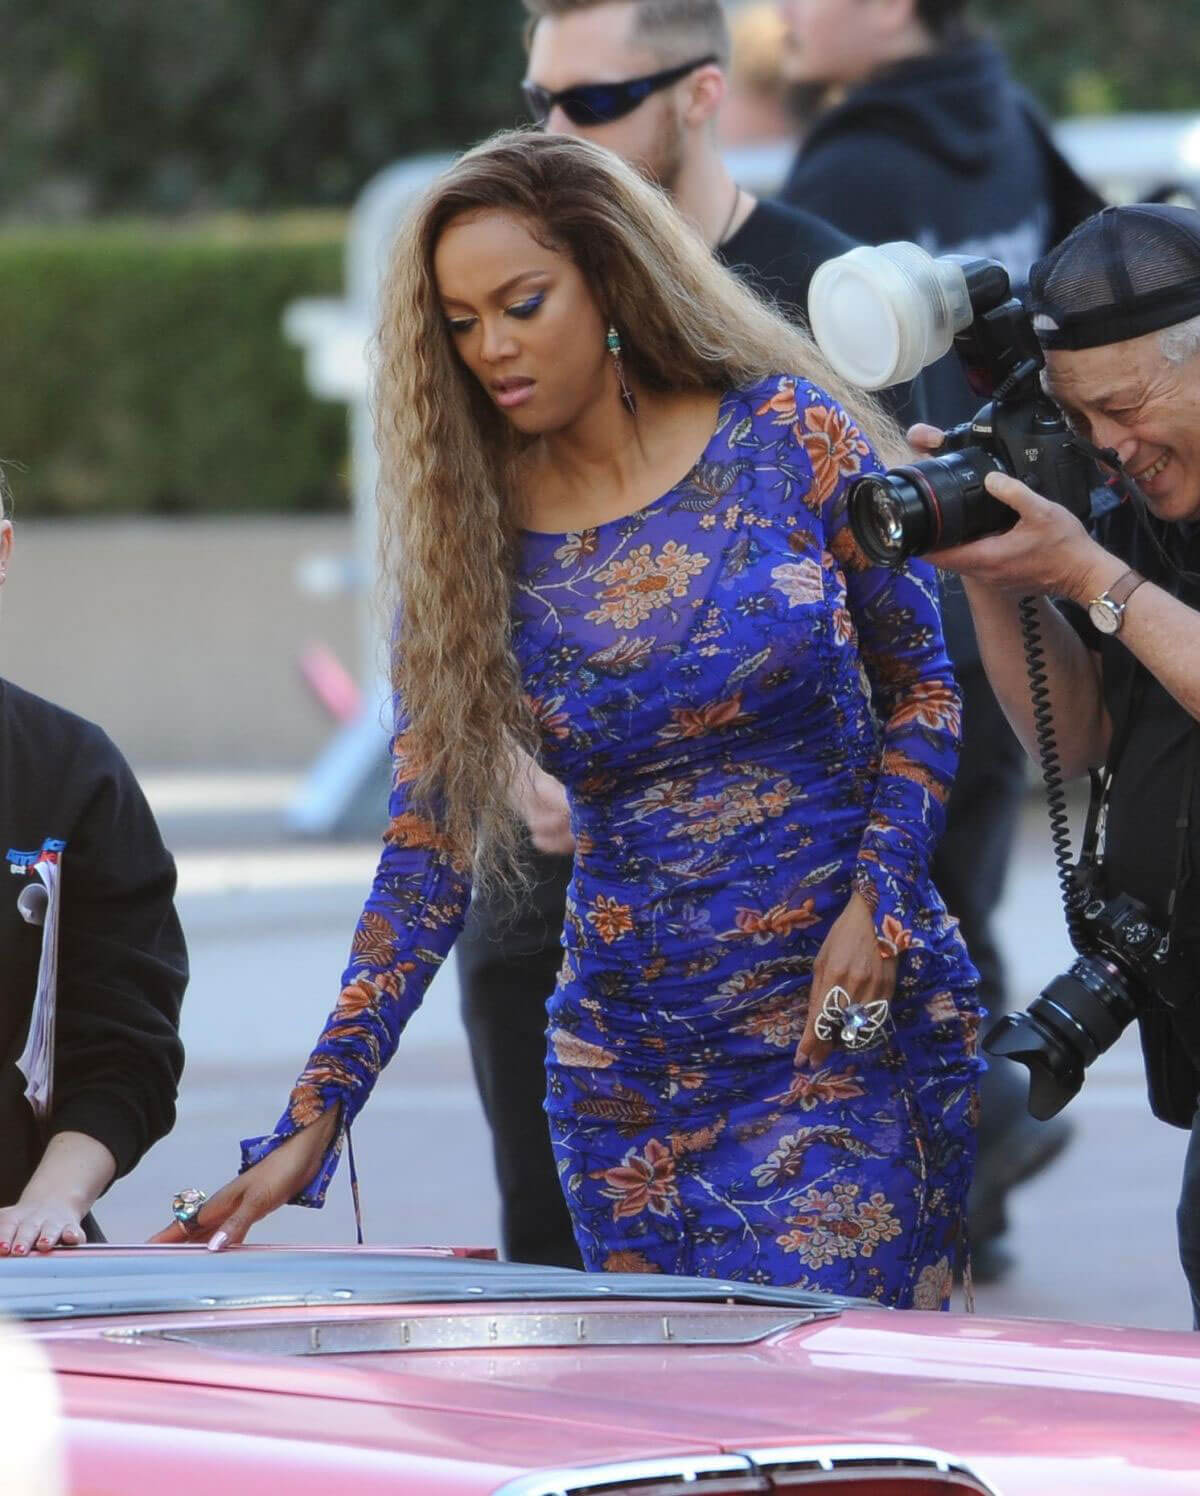 Tyra Banks 2018: Tyra Banks Stills At America's Got Talent Auditions In